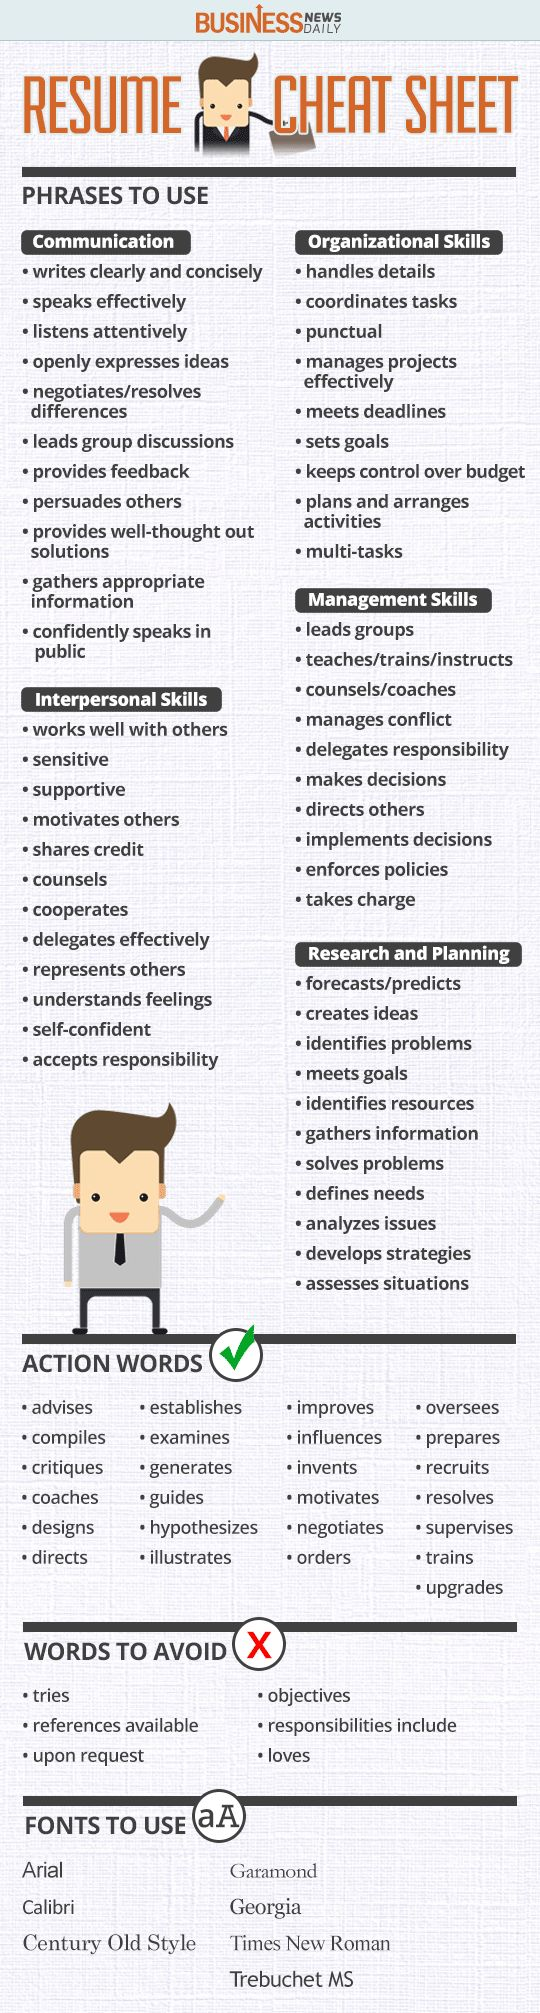 Opposenewapstandardsus  Remarkable  Ideas About Resume On Pinterest  Cv Format Resume Cv And  With Goodlooking Resume Cheat Sheet Infographic Andrews Almost Done With A Complete Unit On Employment Which With Archaic Adjunct Professor Resume Sample Also Resume Objectives For College Students In Addition Resume For Recommendation Letter And Tech Resume Examples As Well As Strong Action Words For Resume Additionally Good Descriptive Words For Resume From Pinterestcom With Opposenewapstandardsus  Goodlooking  Ideas About Resume On Pinterest  Cv Format Resume Cv And  With Archaic Resume Cheat Sheet Infographic Andrews Almost Done With A Complete Unit On Employment Which And Remarkable Adjunct Professor Resume Sample Also Resume Objectives For College Students In Addition Resume For Recommendation Letter From Pinterestcom